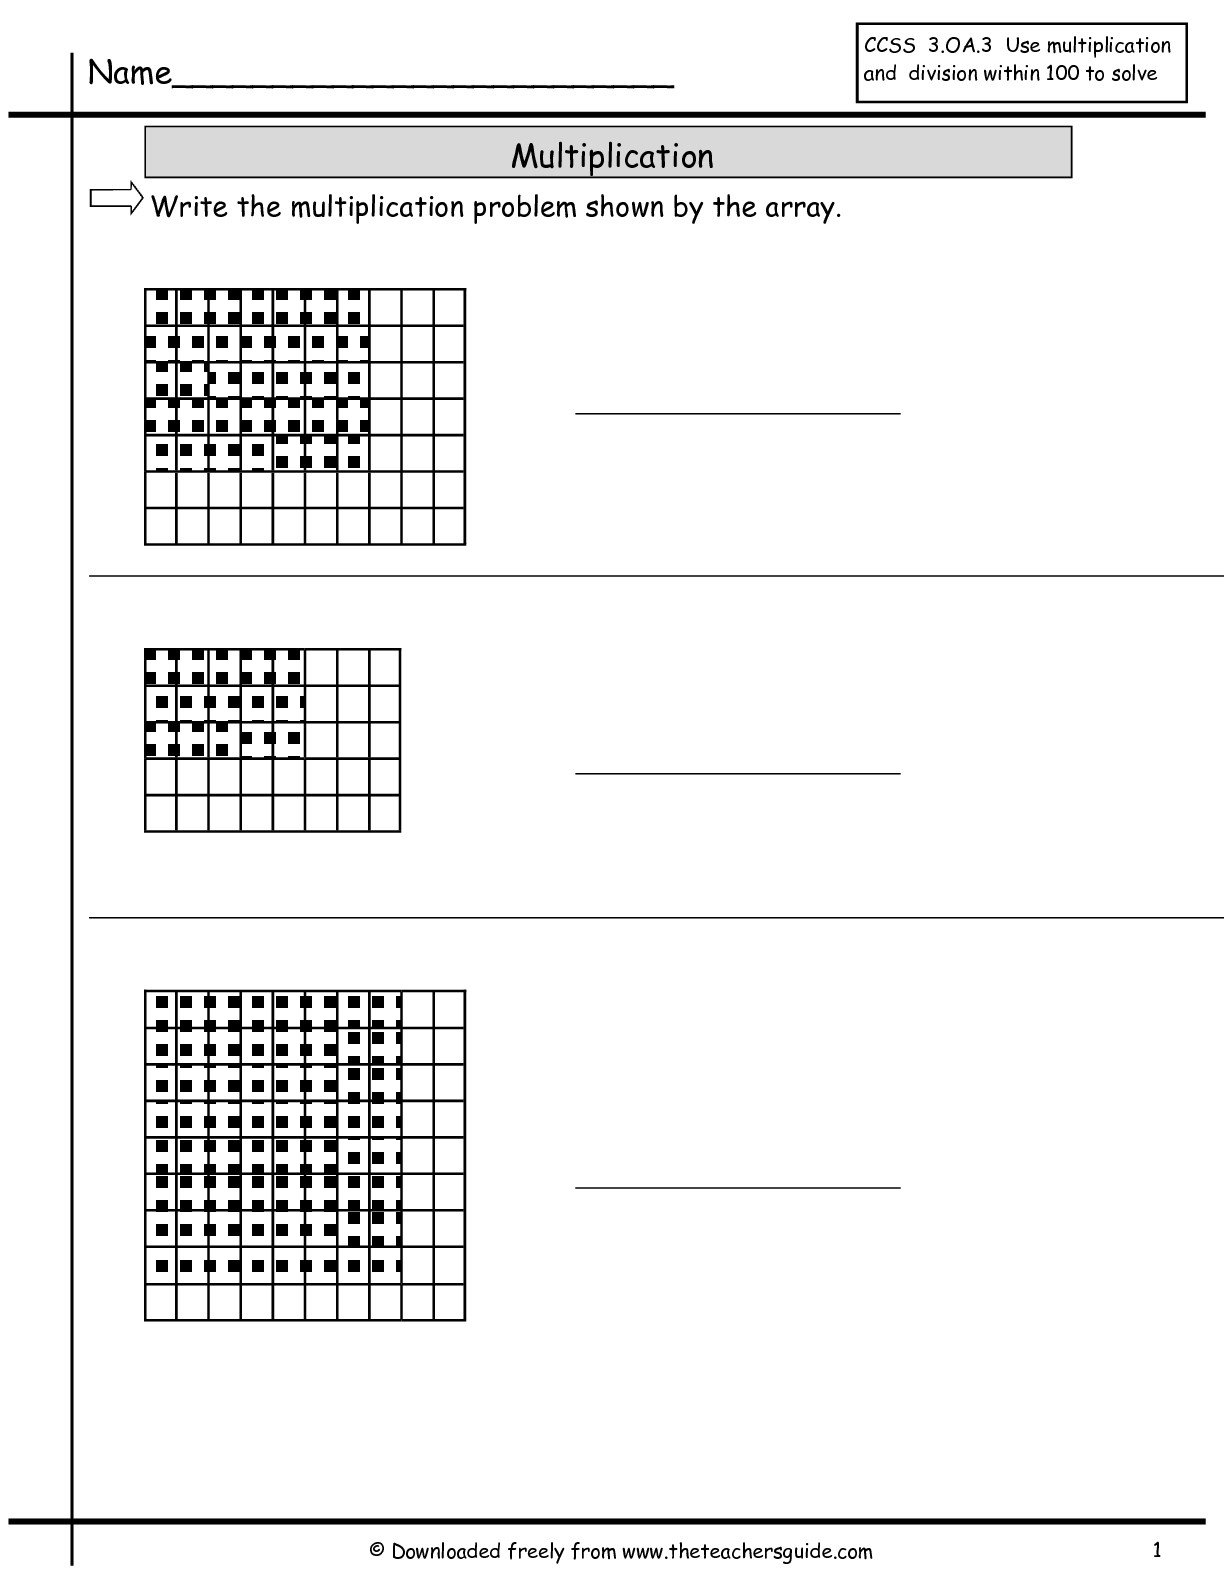 Multiplication Array Worksheets From The Teacher's Guide With Regard To Arrays And Multiplying By 10 And 100 Worksheet